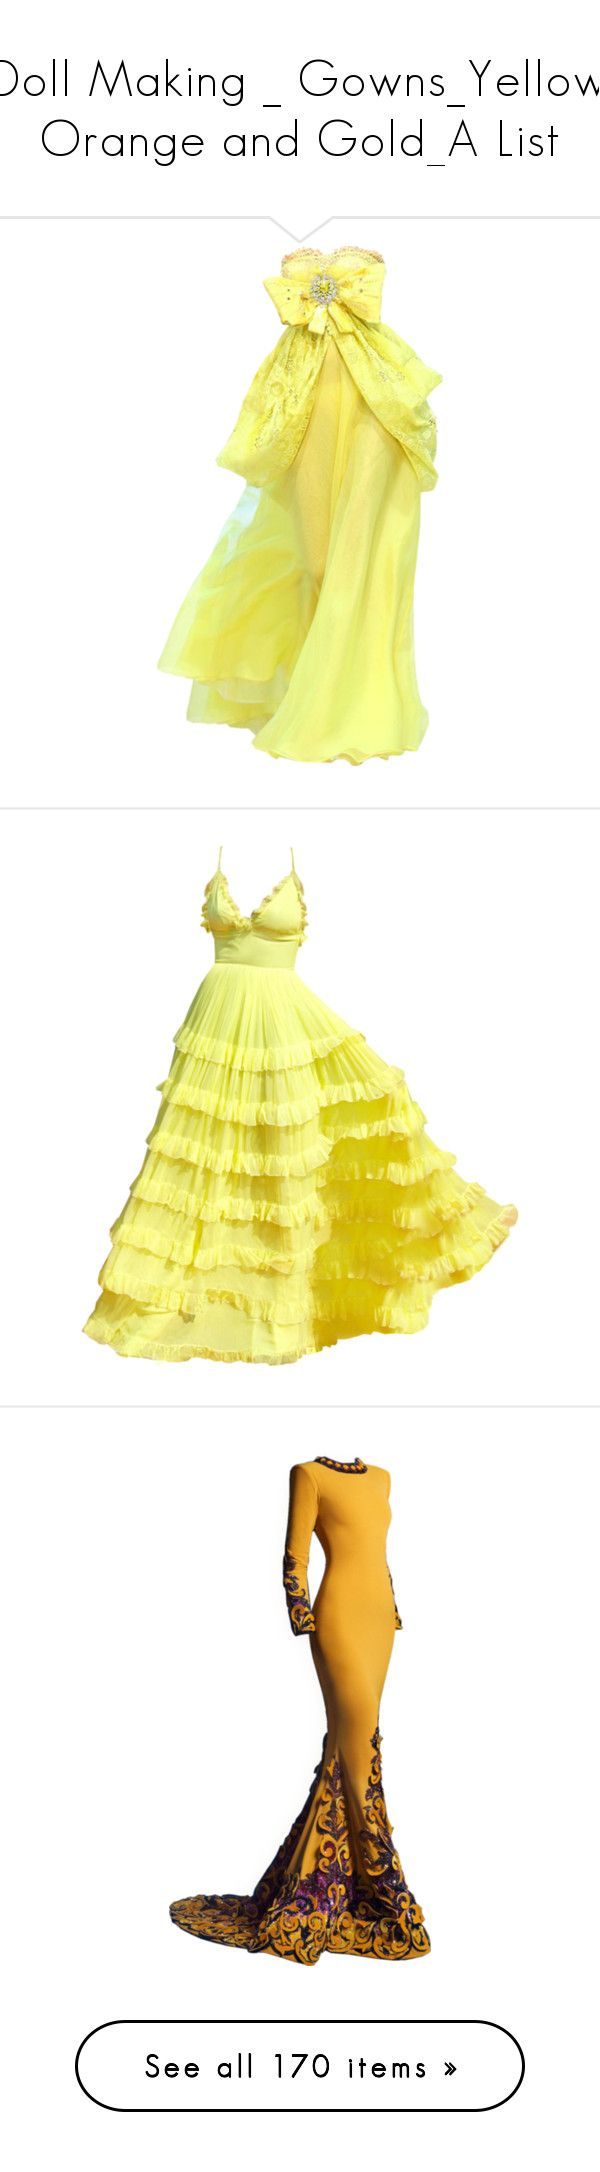 """Doll Making _ Gowns_Yellow. Orange and Gold_A List"" by auntiehelen ❤ liked on Polyvore featuring dresses, gowns, long dress, satinee, long dresses, yellow dress, yellow ball gown, long yellow dress, yellow evening dress and vestidos"